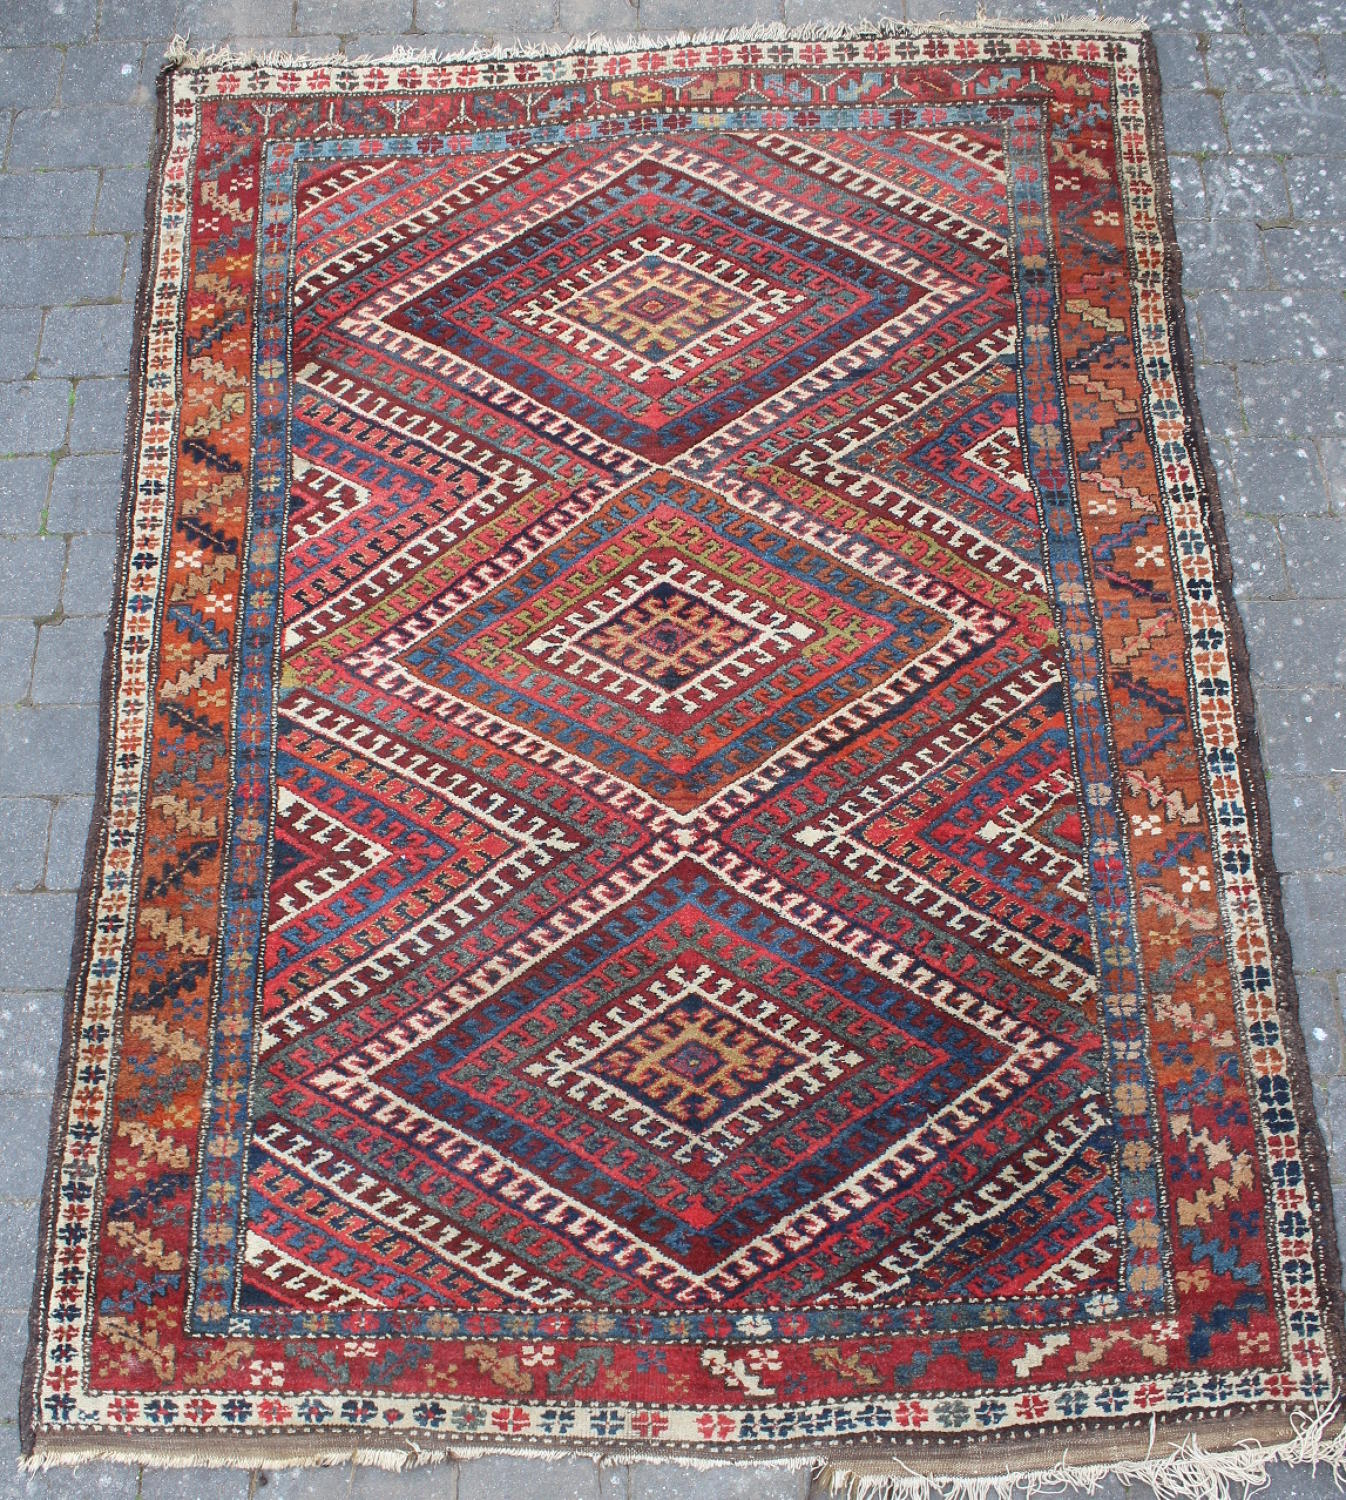 A Kurdish Medallion Rug